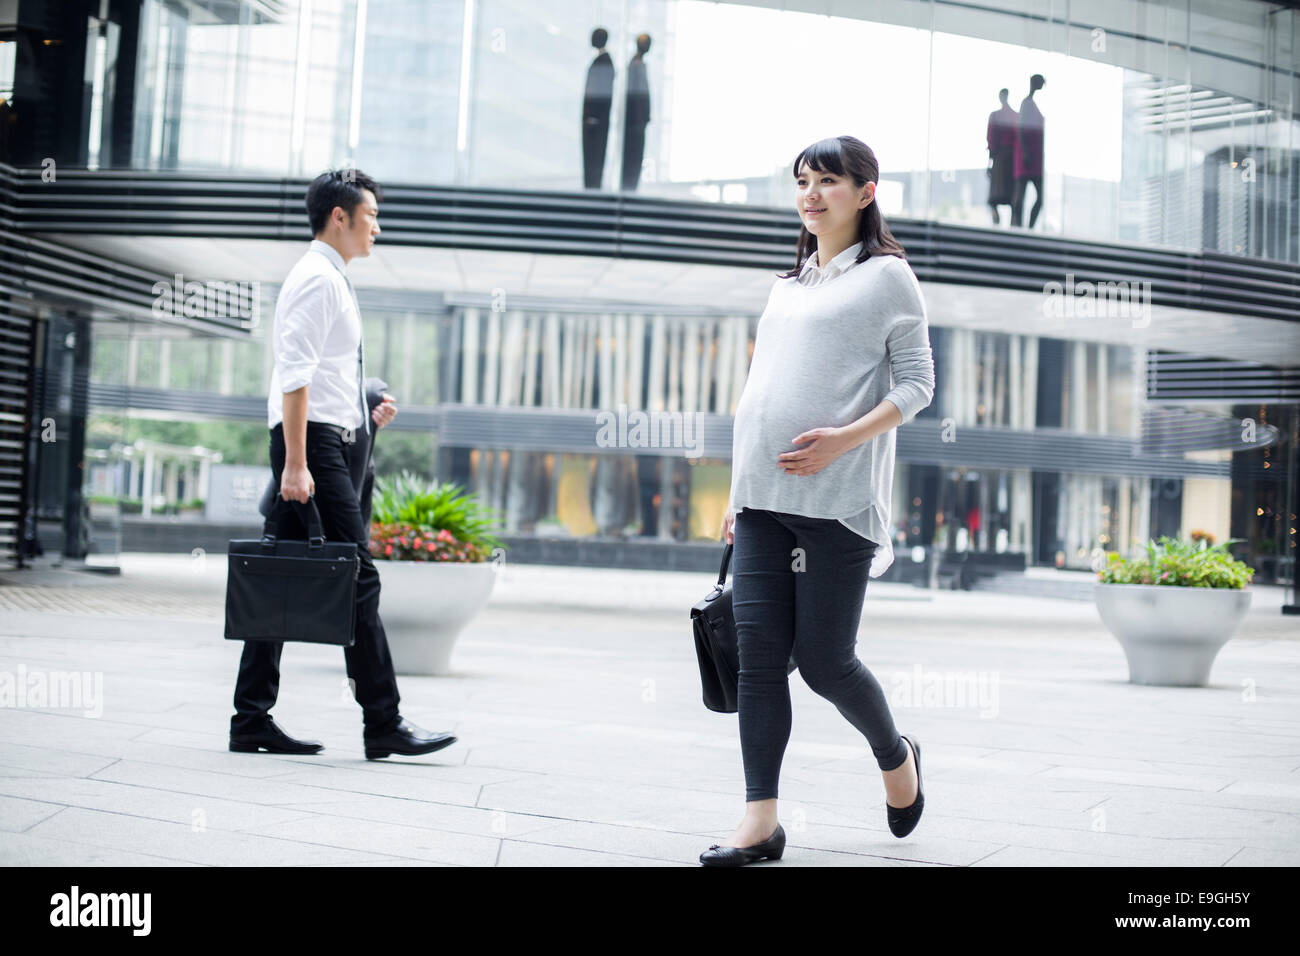 Pregnant businesswoman walking in city center - Stock Image